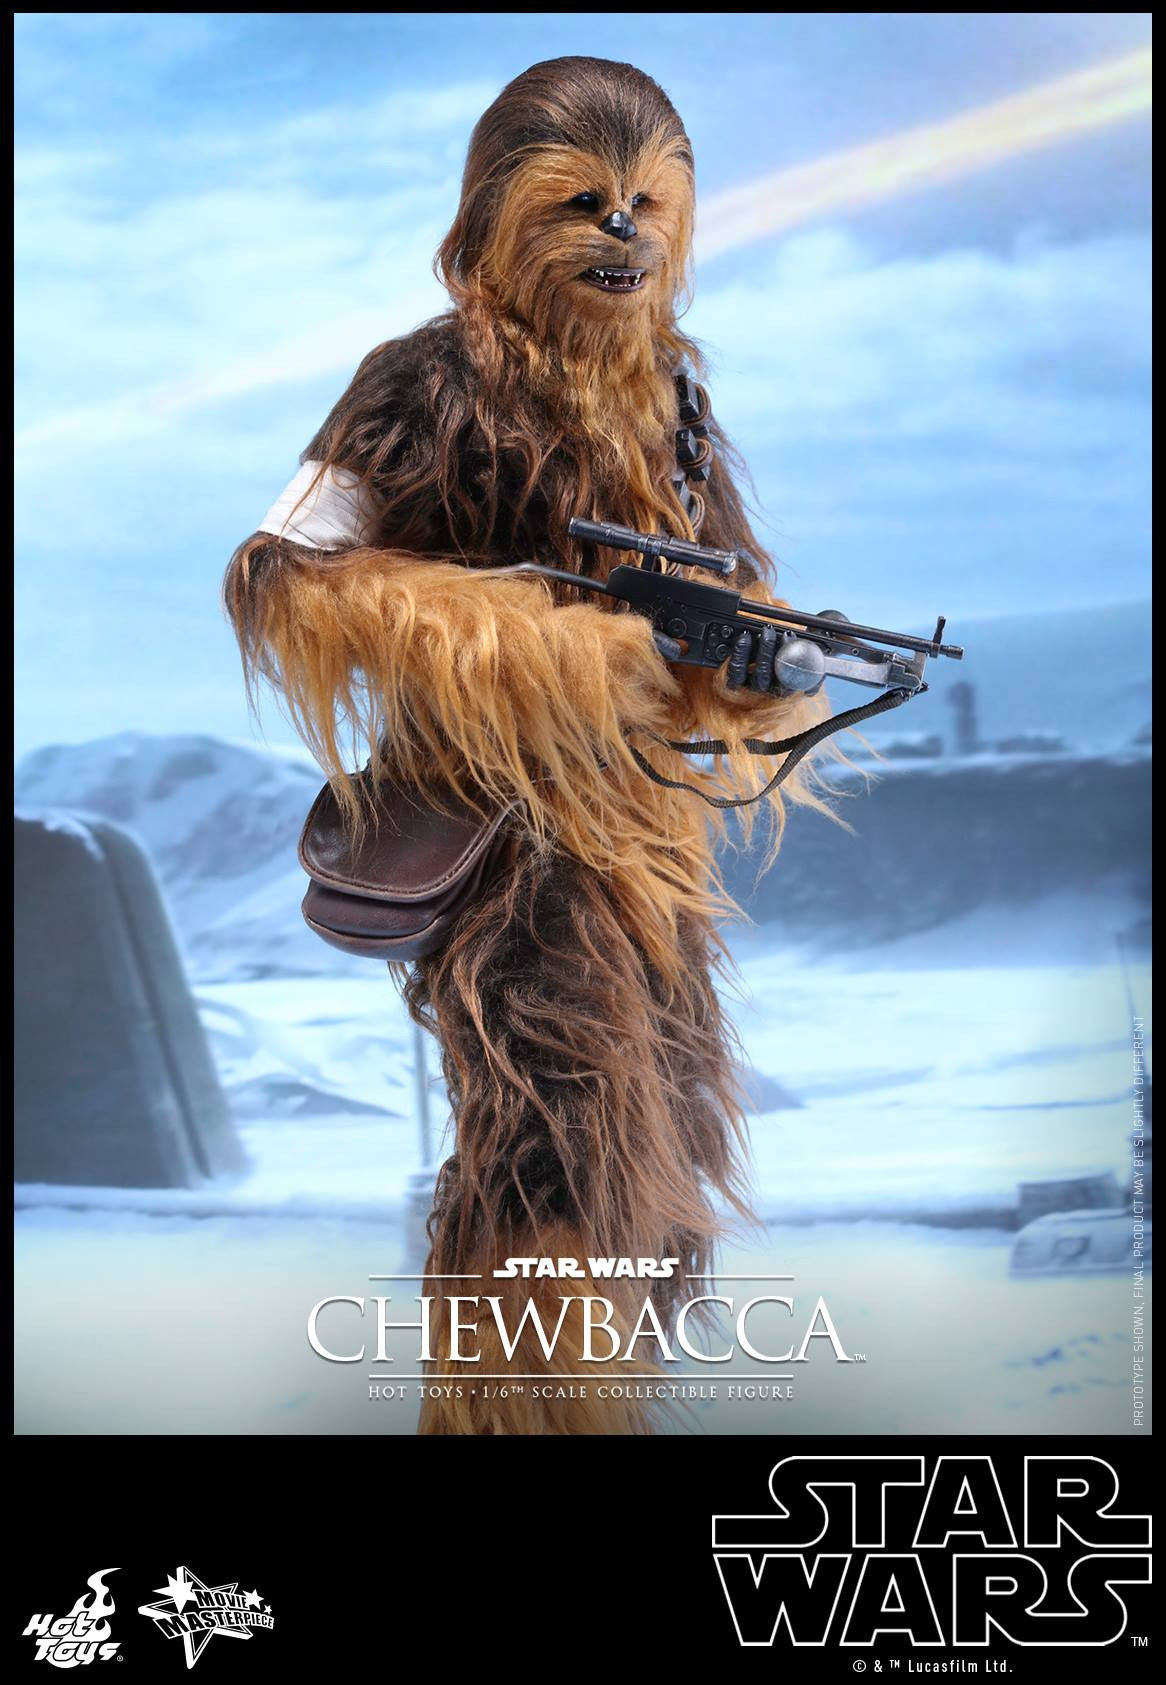 Hot Toys - MMS375 - Star Wars: The Force Awakens - Chewbacca - Marvelous Toys - 6